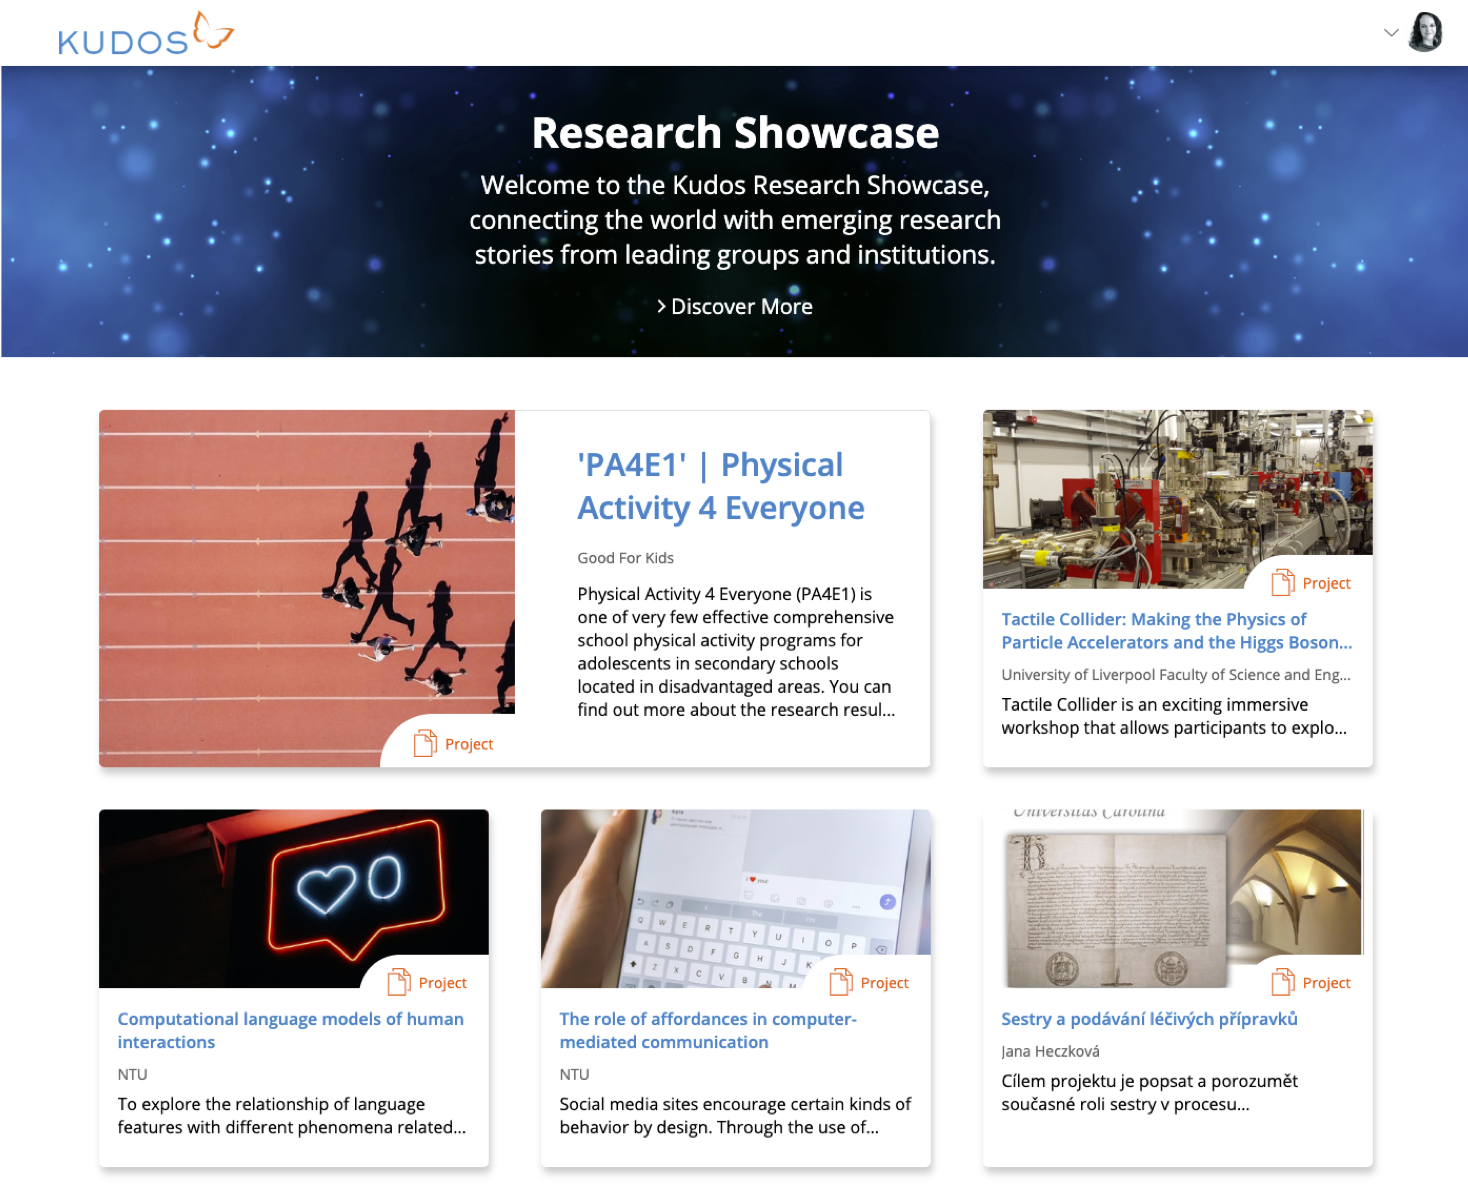 Kudos launches new Research Showcase to maximize non-academic impact of research projects